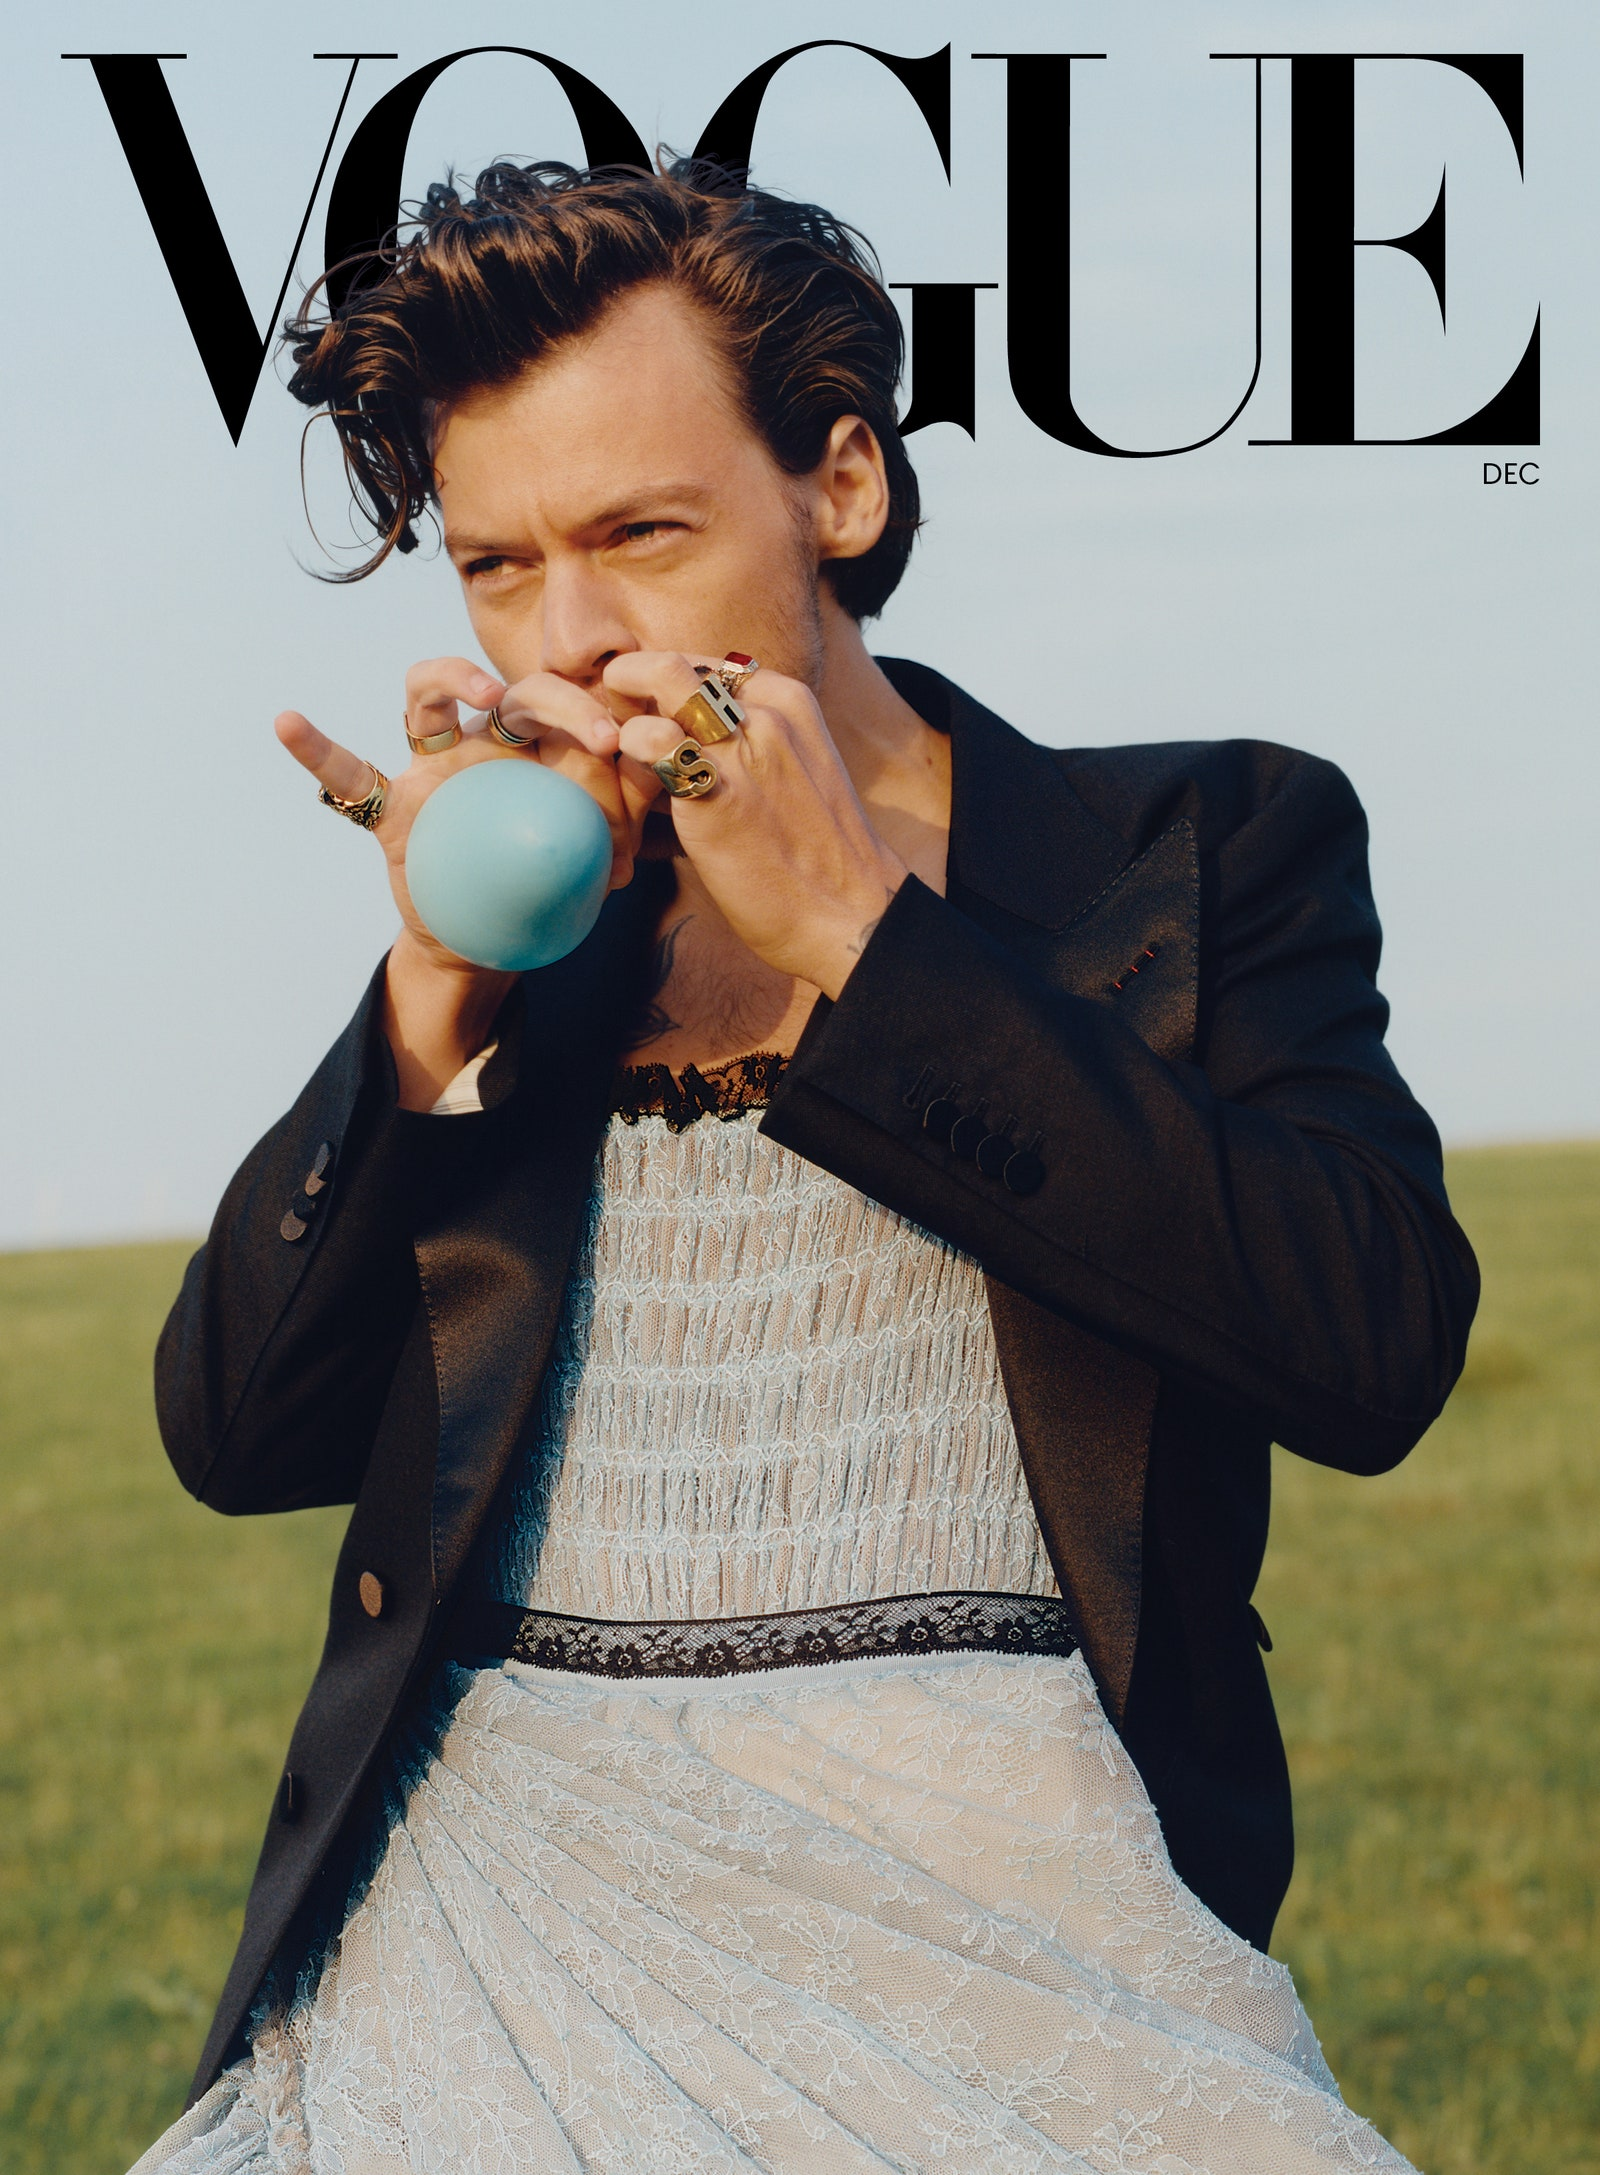 Is Harry Styles Destroying Masculinity By Wearing A Dress On The Cover Of Vogue?